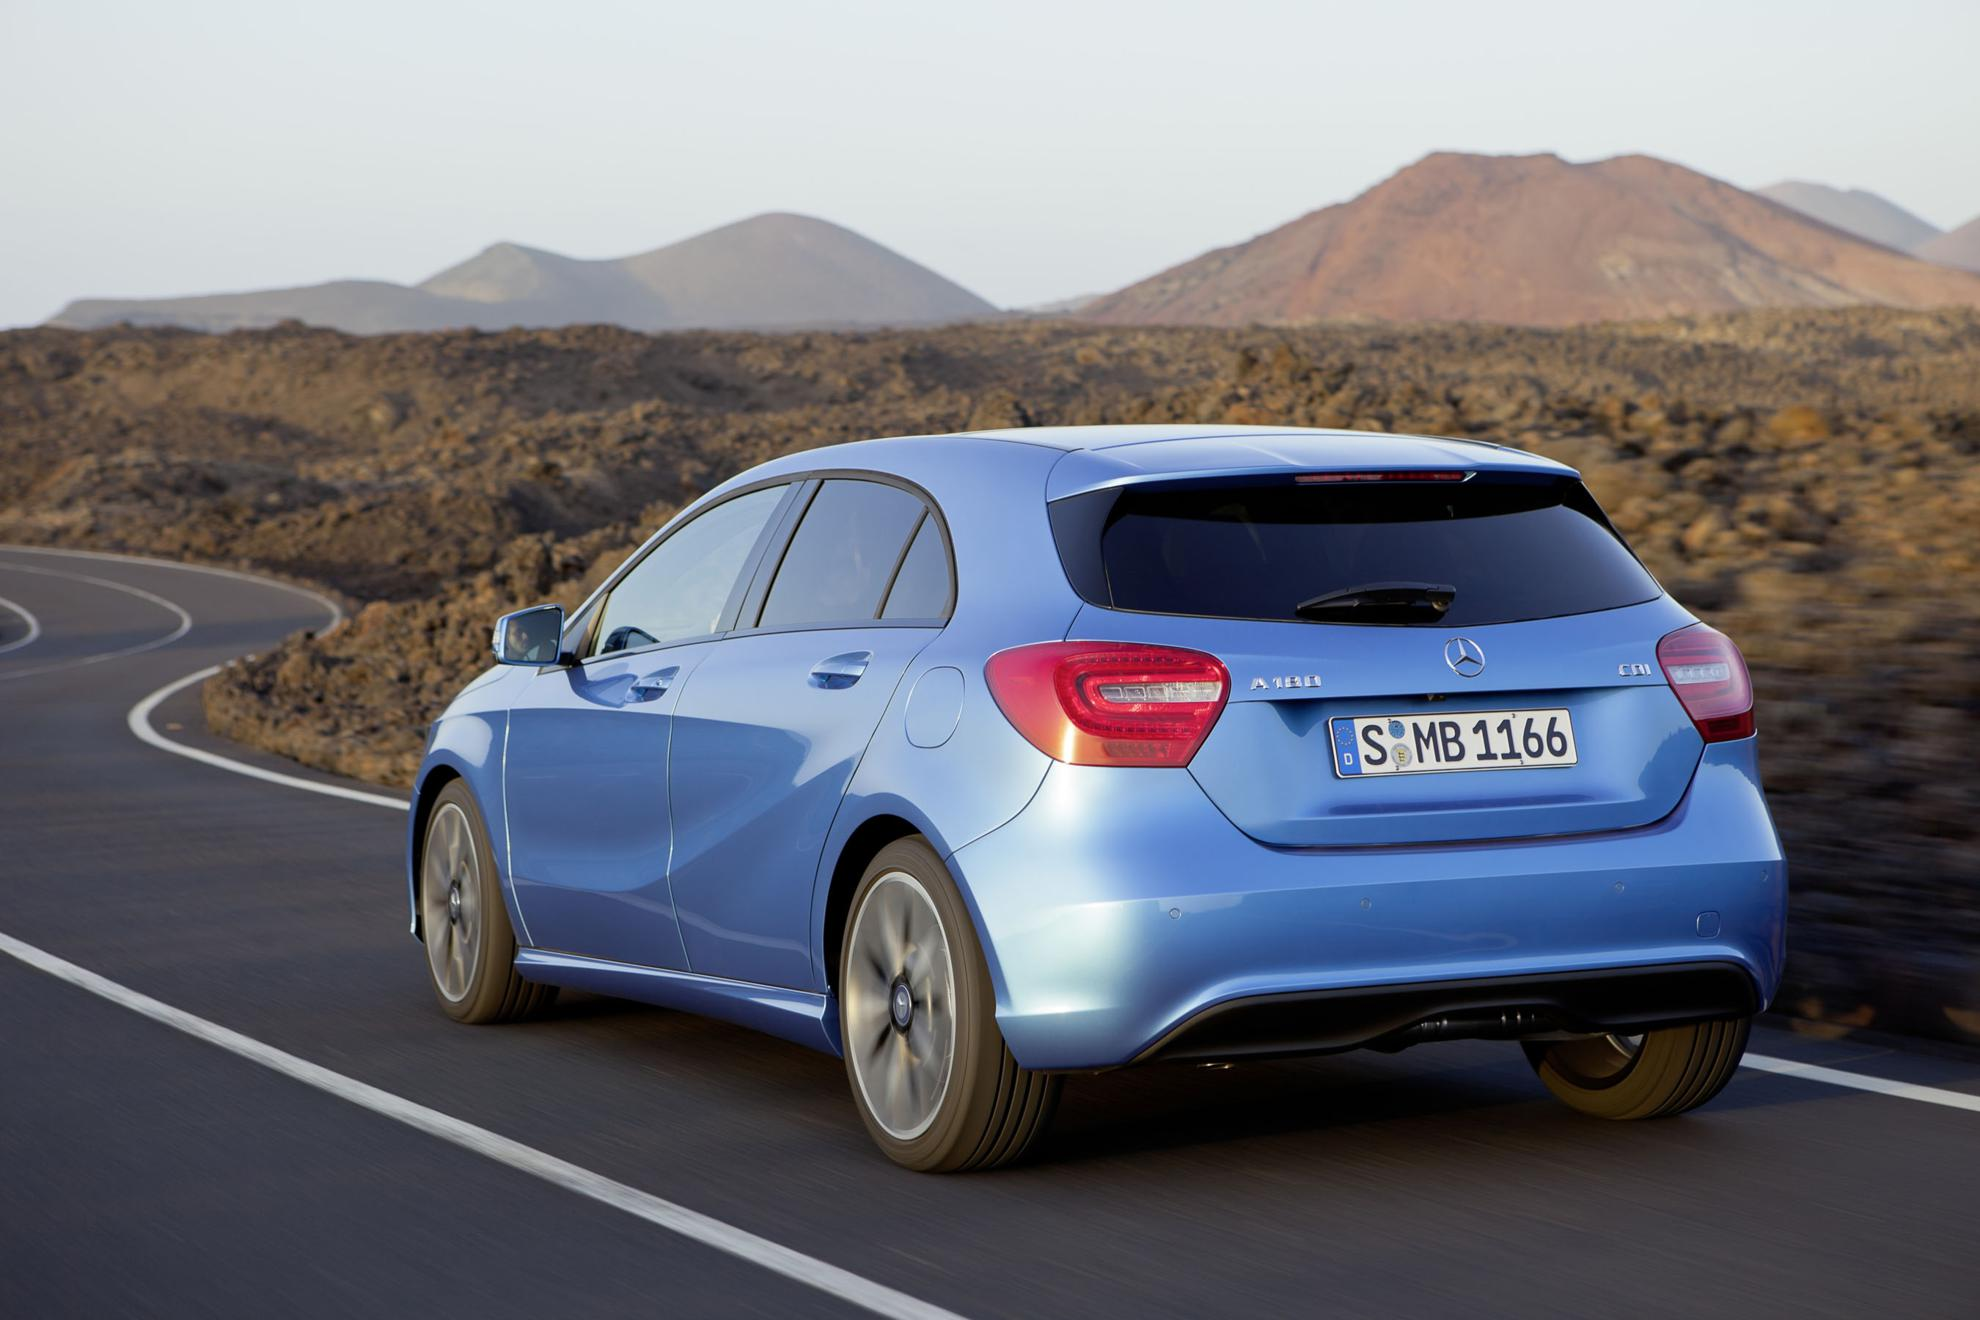 Mercedes-Benz A-Class South Africa